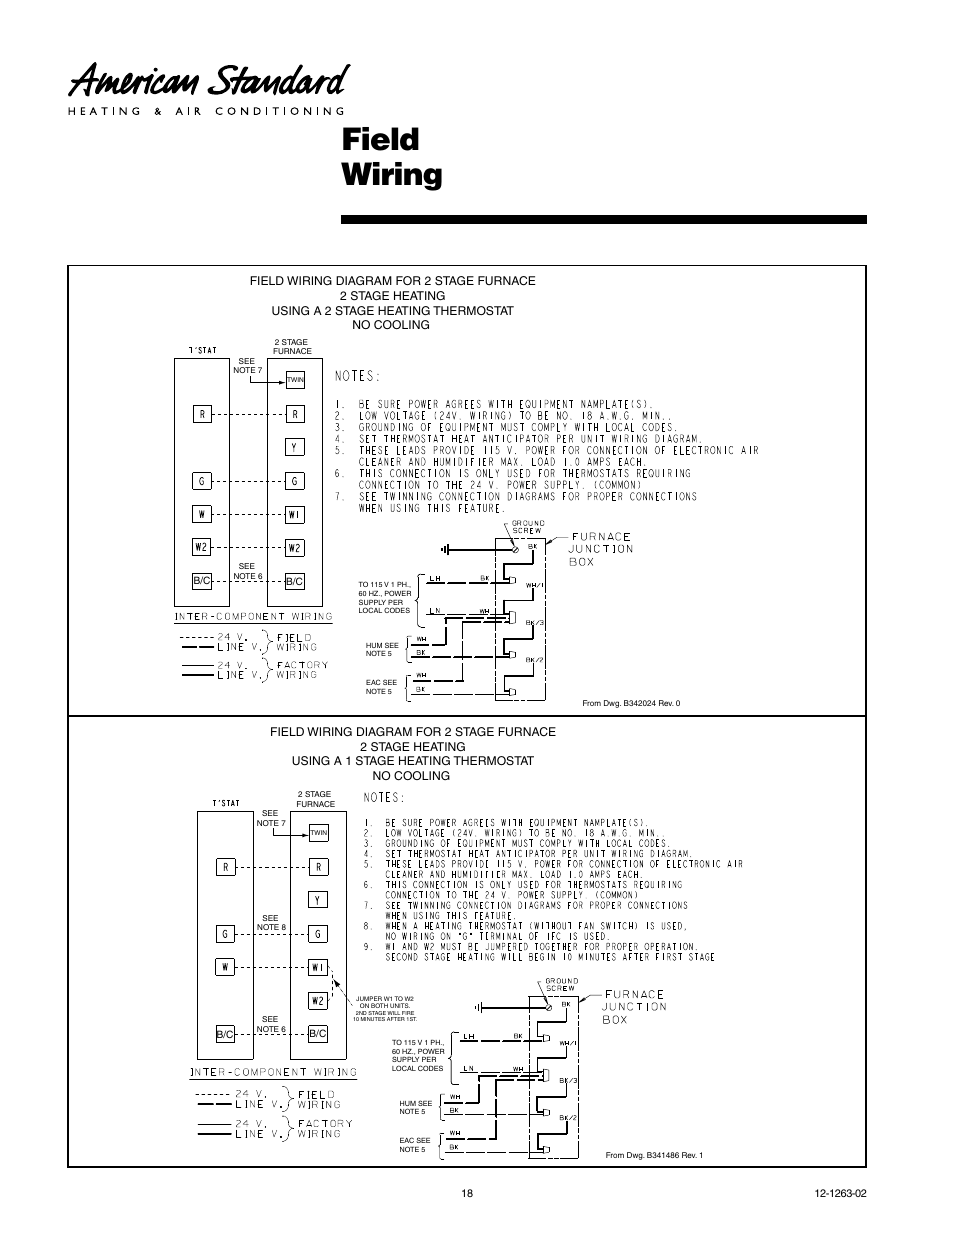 american standard freedom 80 page18 field wiring american standard freedom 80 user manual page 18 24 2-stage furnace thermostat wiring diagram at love-stories.co